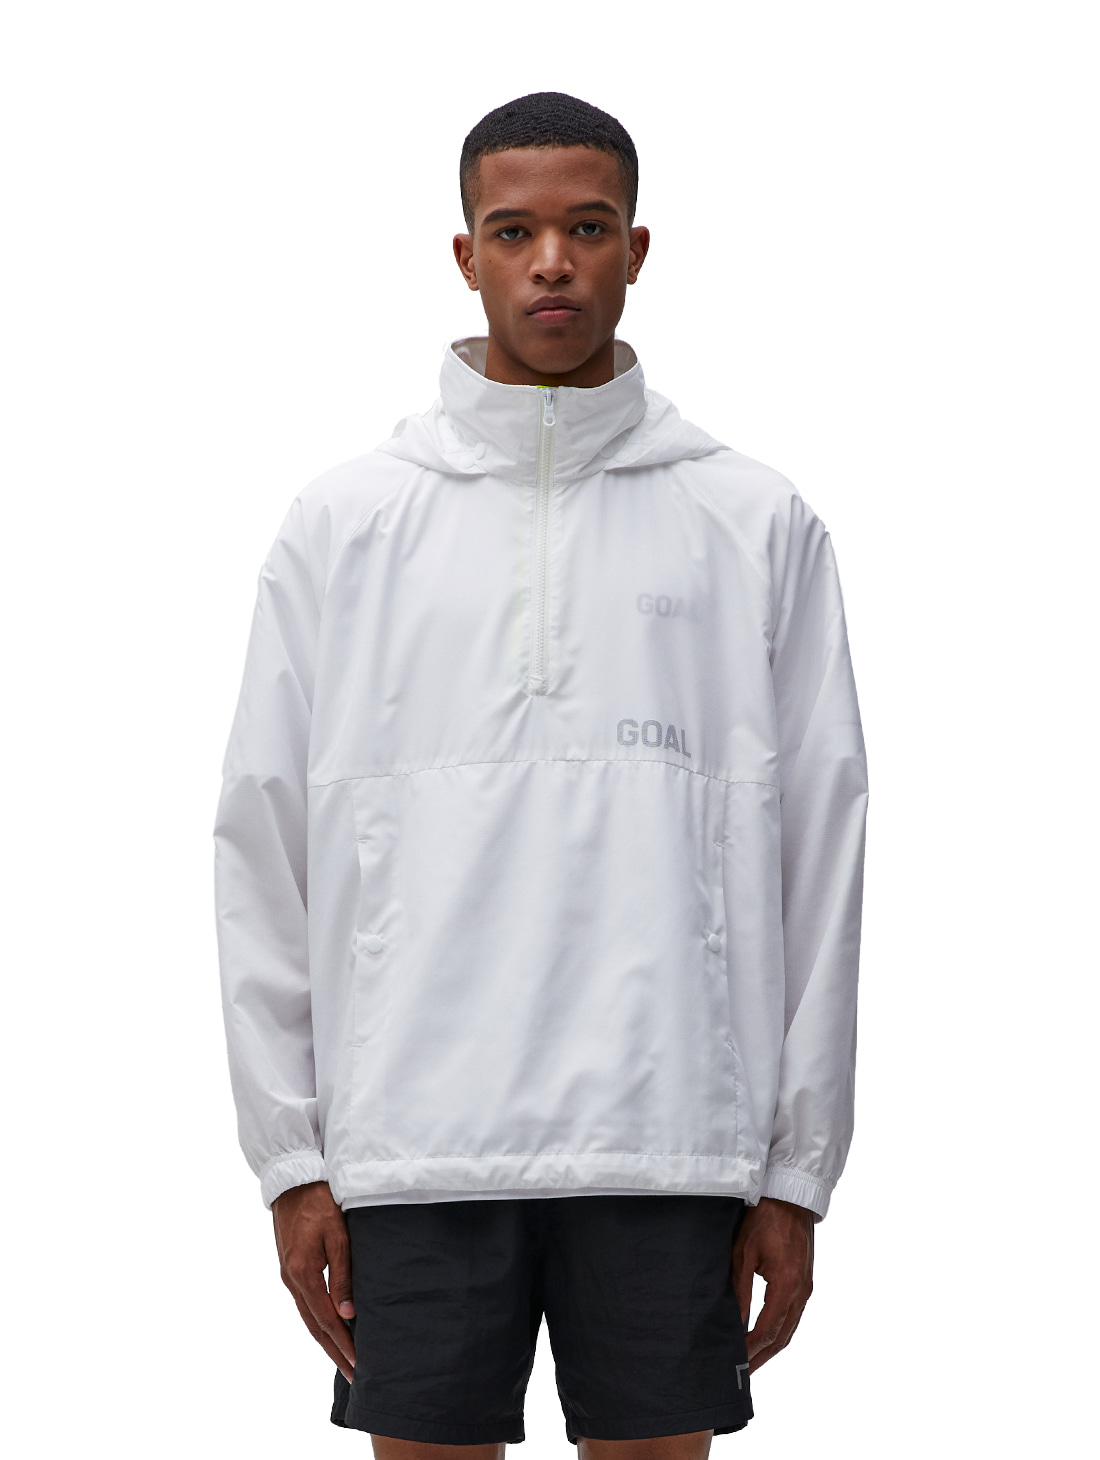 GOALSTUDIO (2XL) LTG ANORAK - WHITE